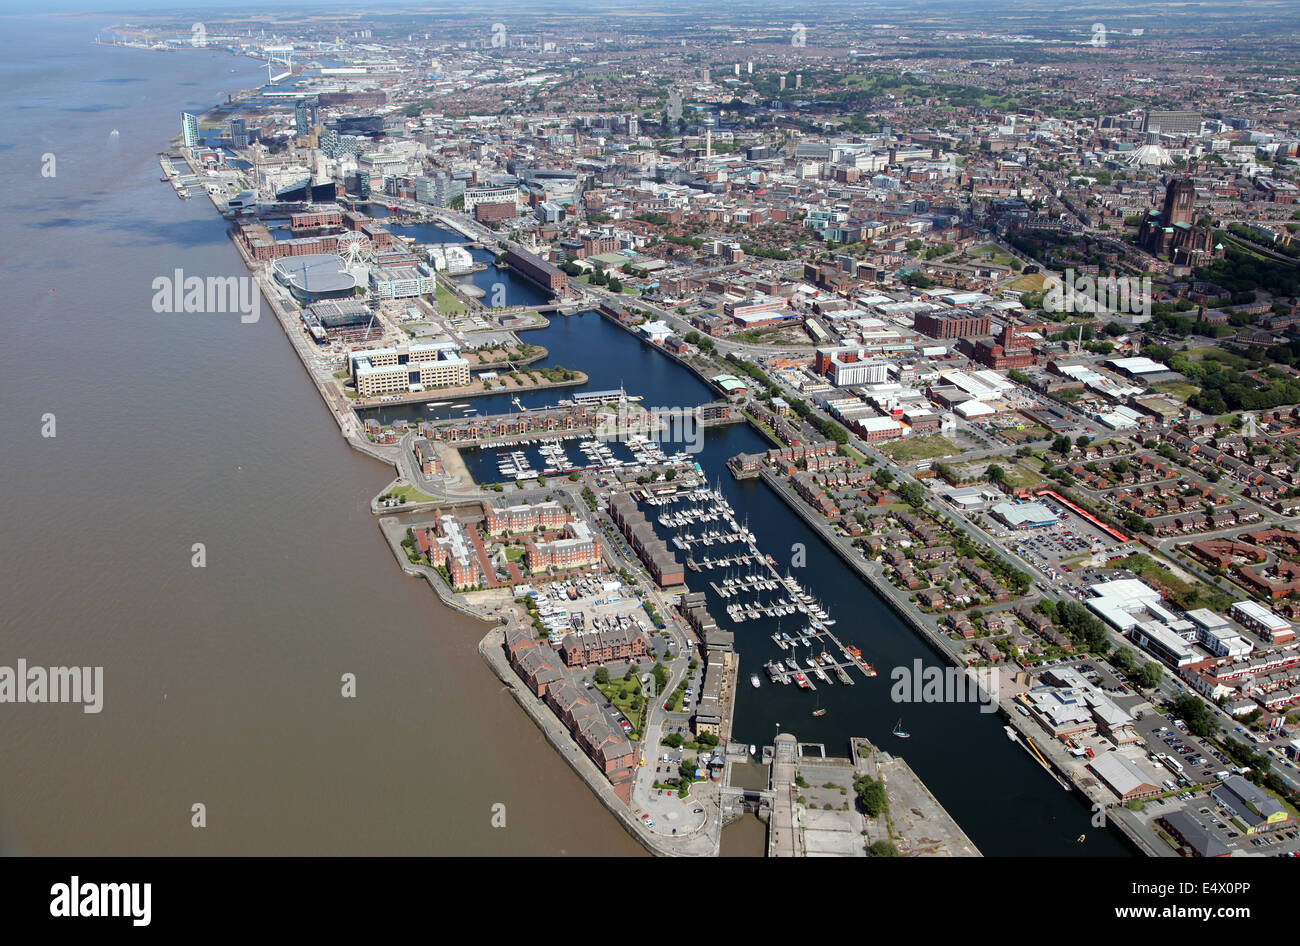 aerial view of Liverpool waterside area fronting on to the River Mersey, UK - Stock Image